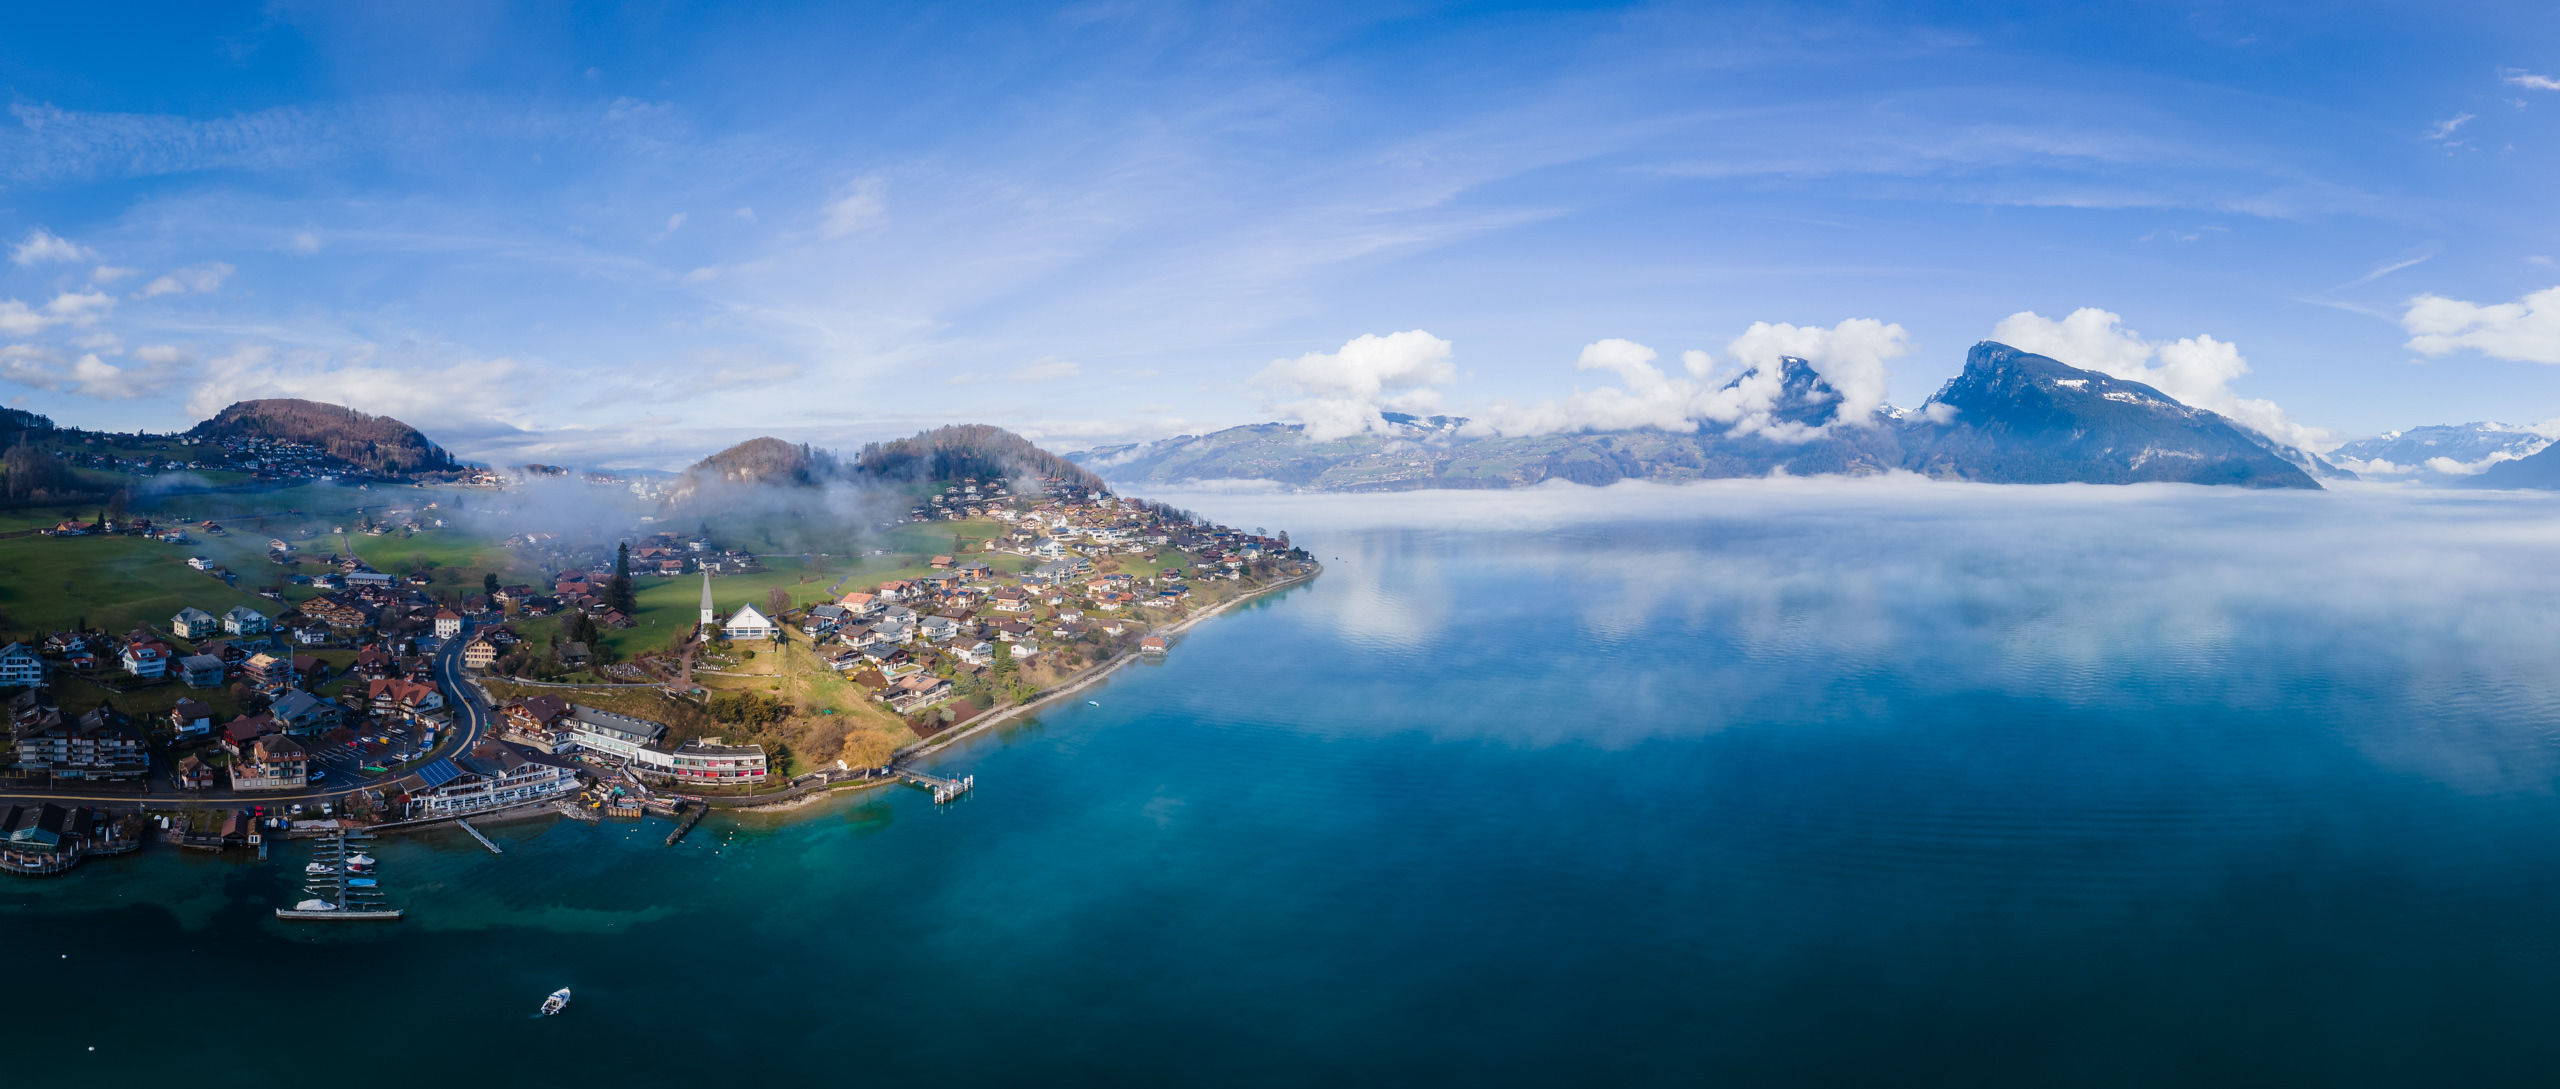 Mist on Lake Thun